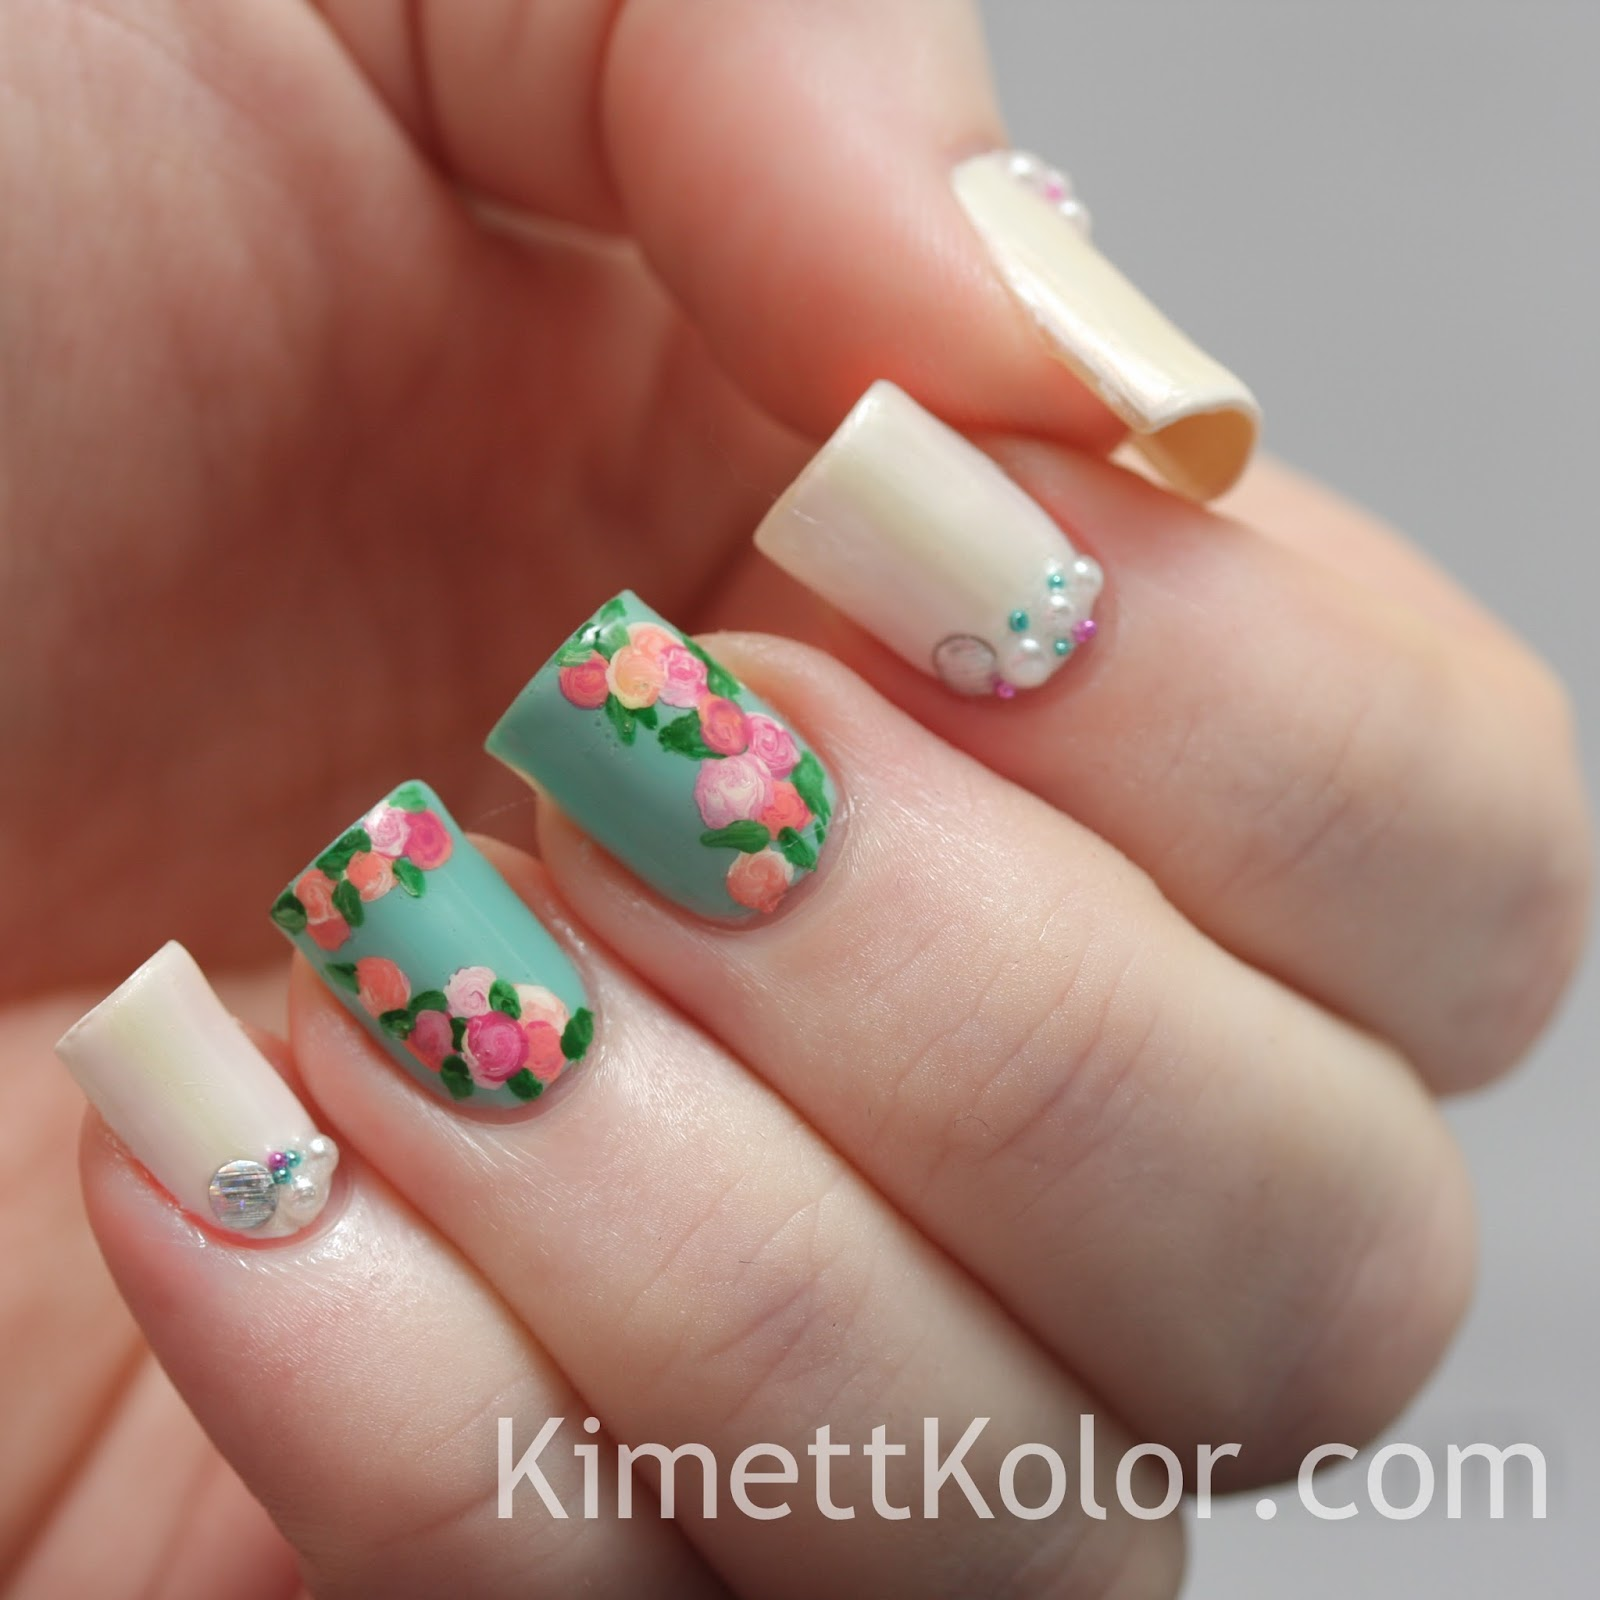 Theme of the Month: June Birthstones and Roses | Kimett Kolor